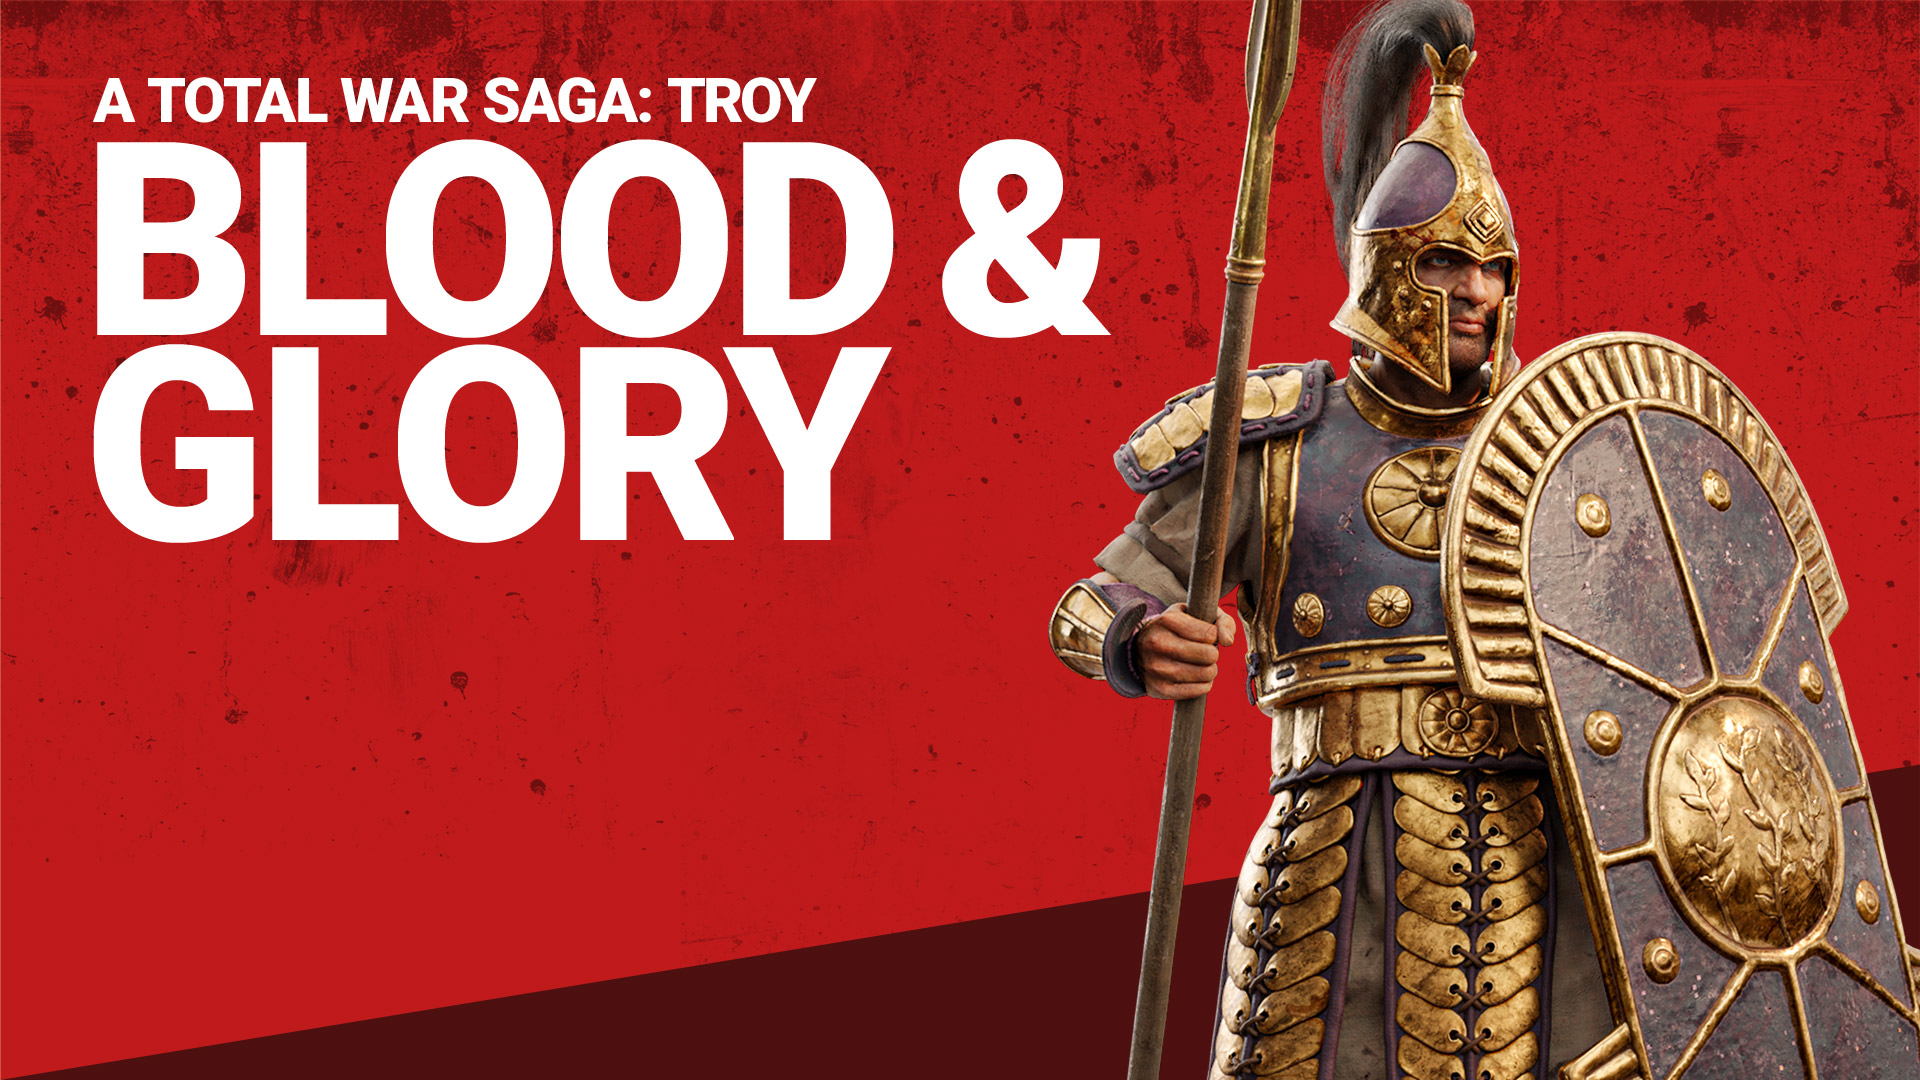 troy_blood_glory_1920x1080.jpg